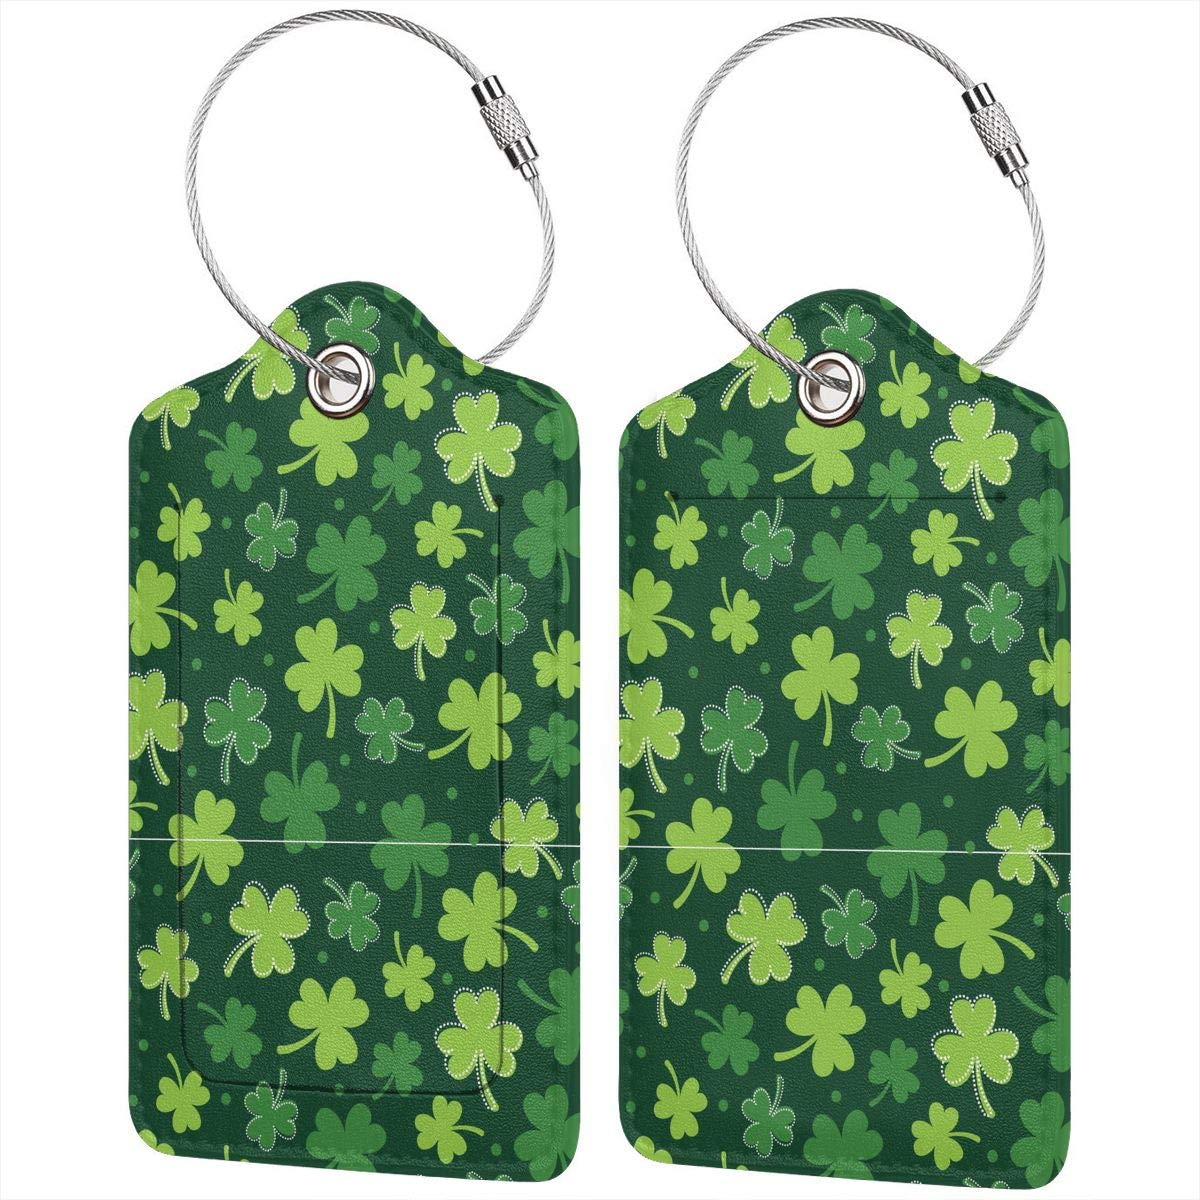 Lucaeat Clover Leaf Pattern Luggage Tag PU Leather Bag Tag Travel Suitcases ID